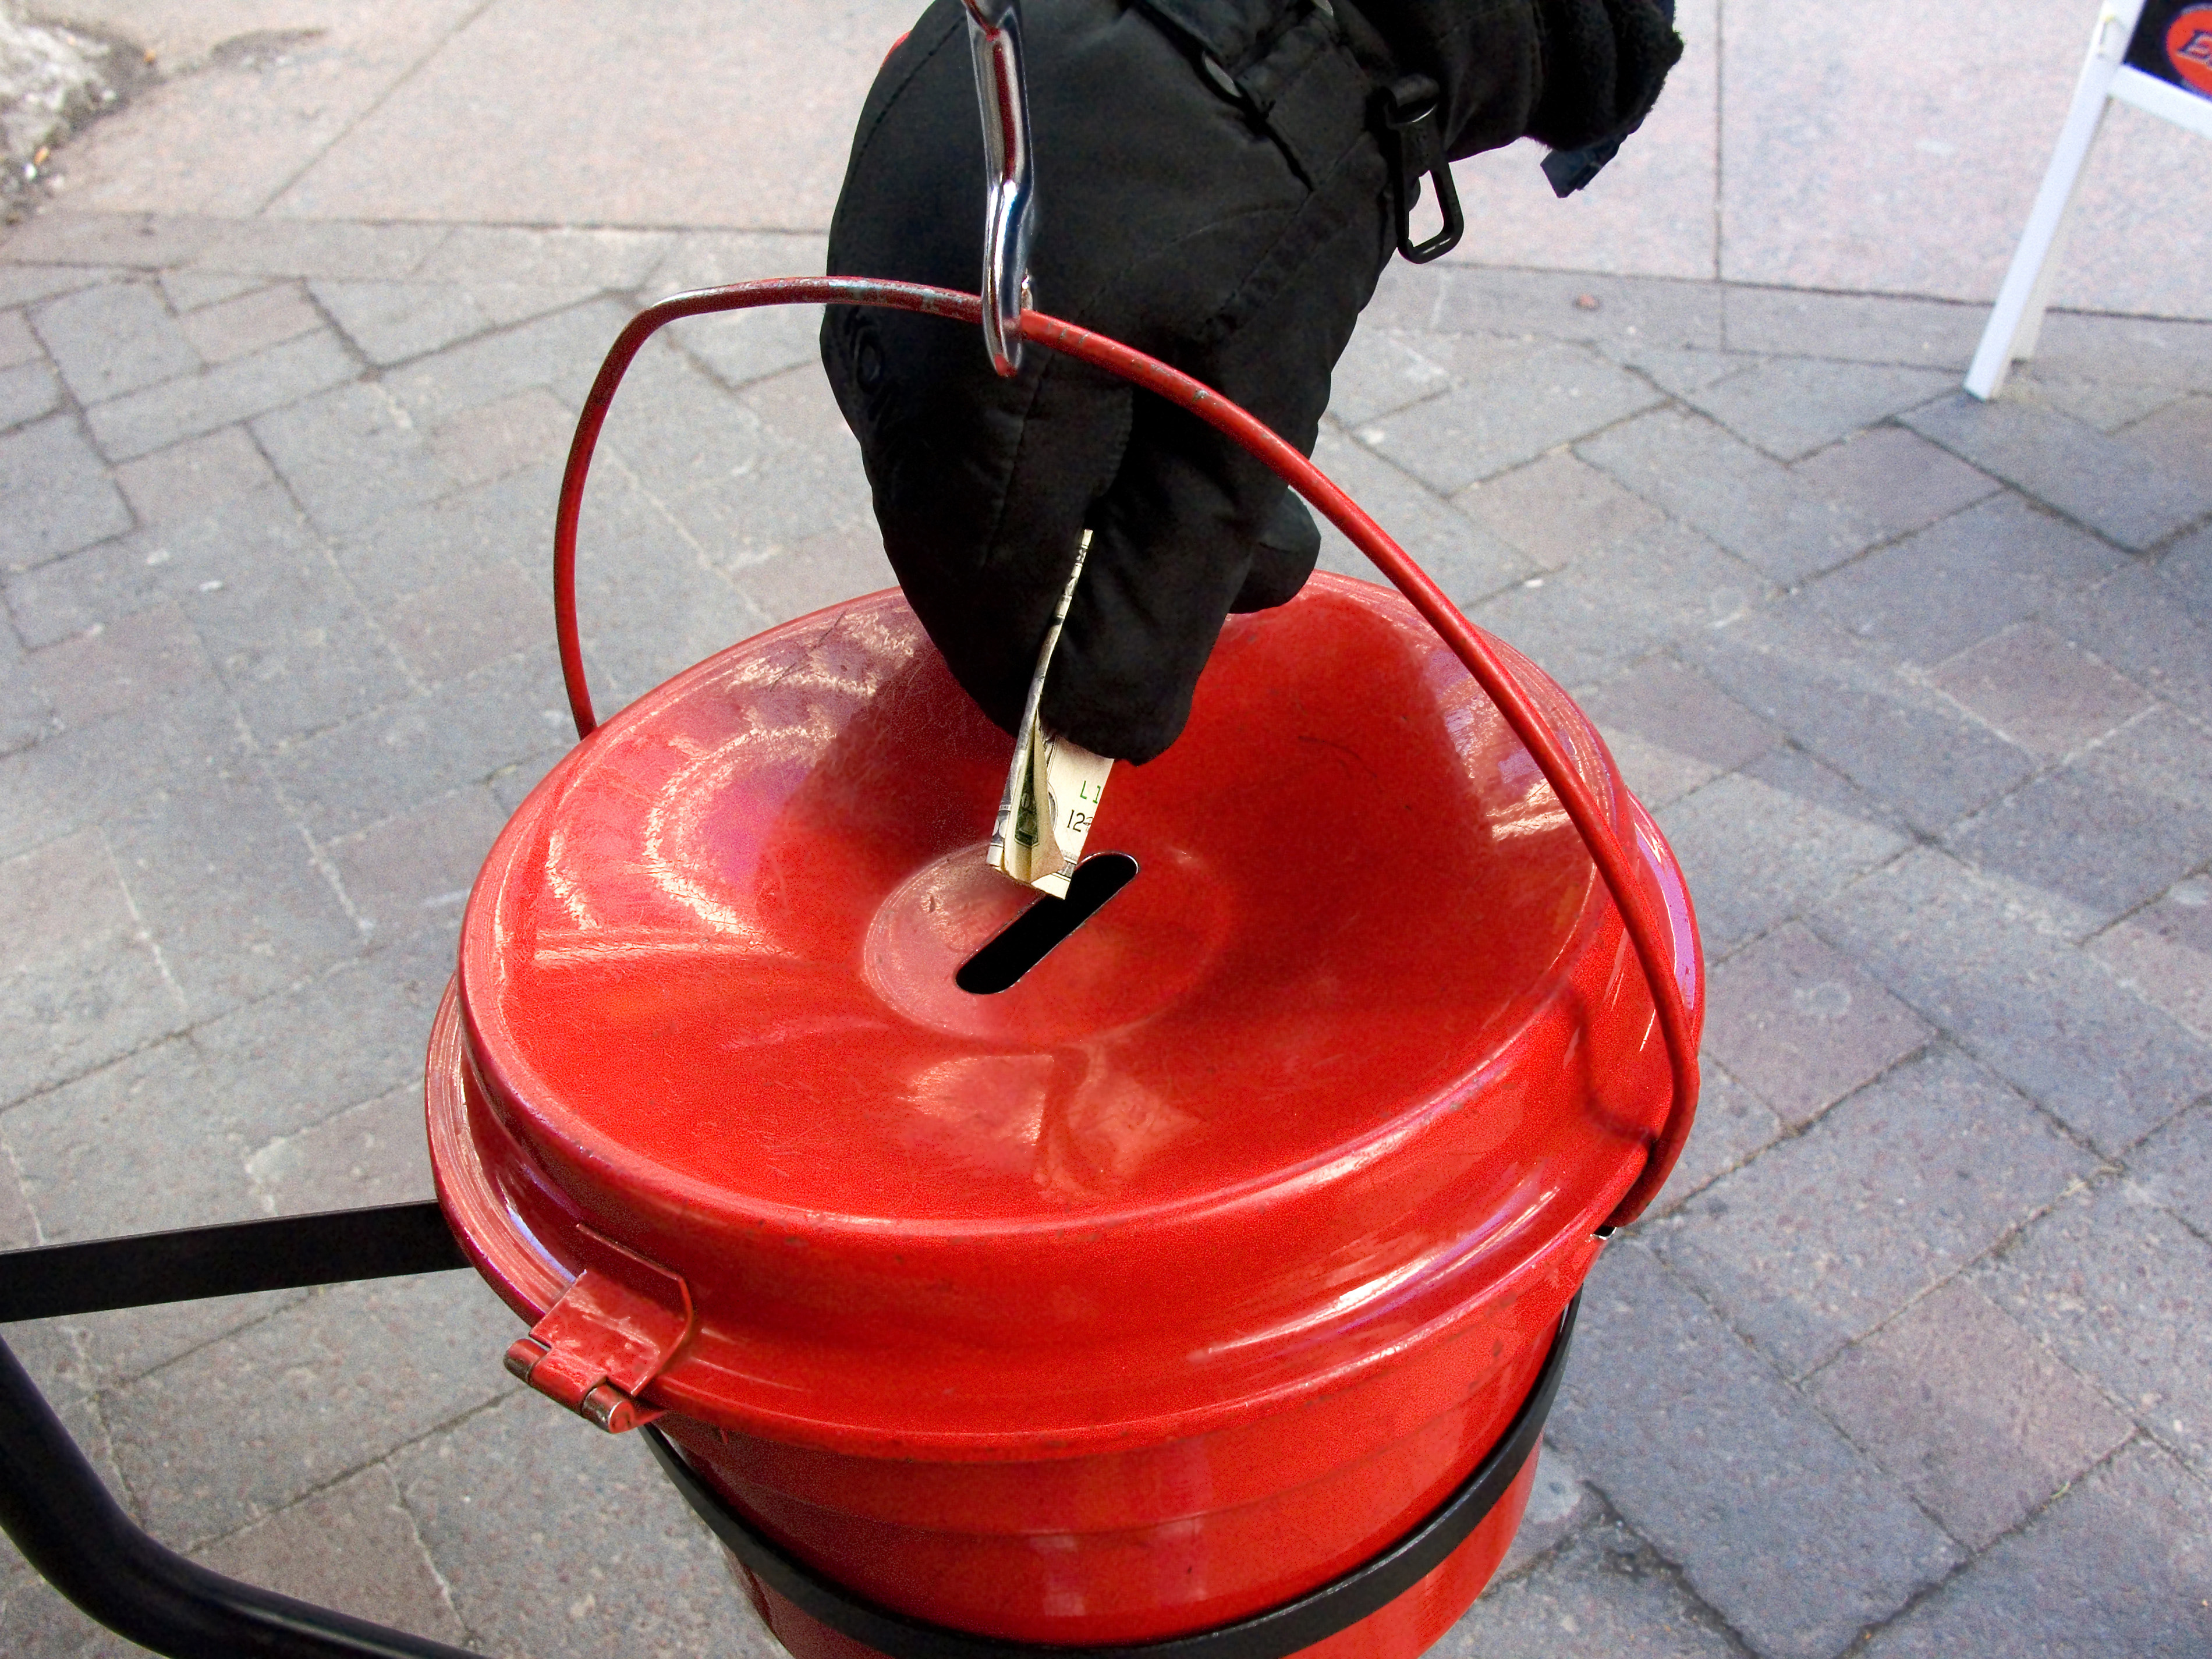 Person putting money into a Salvation Army kettle.